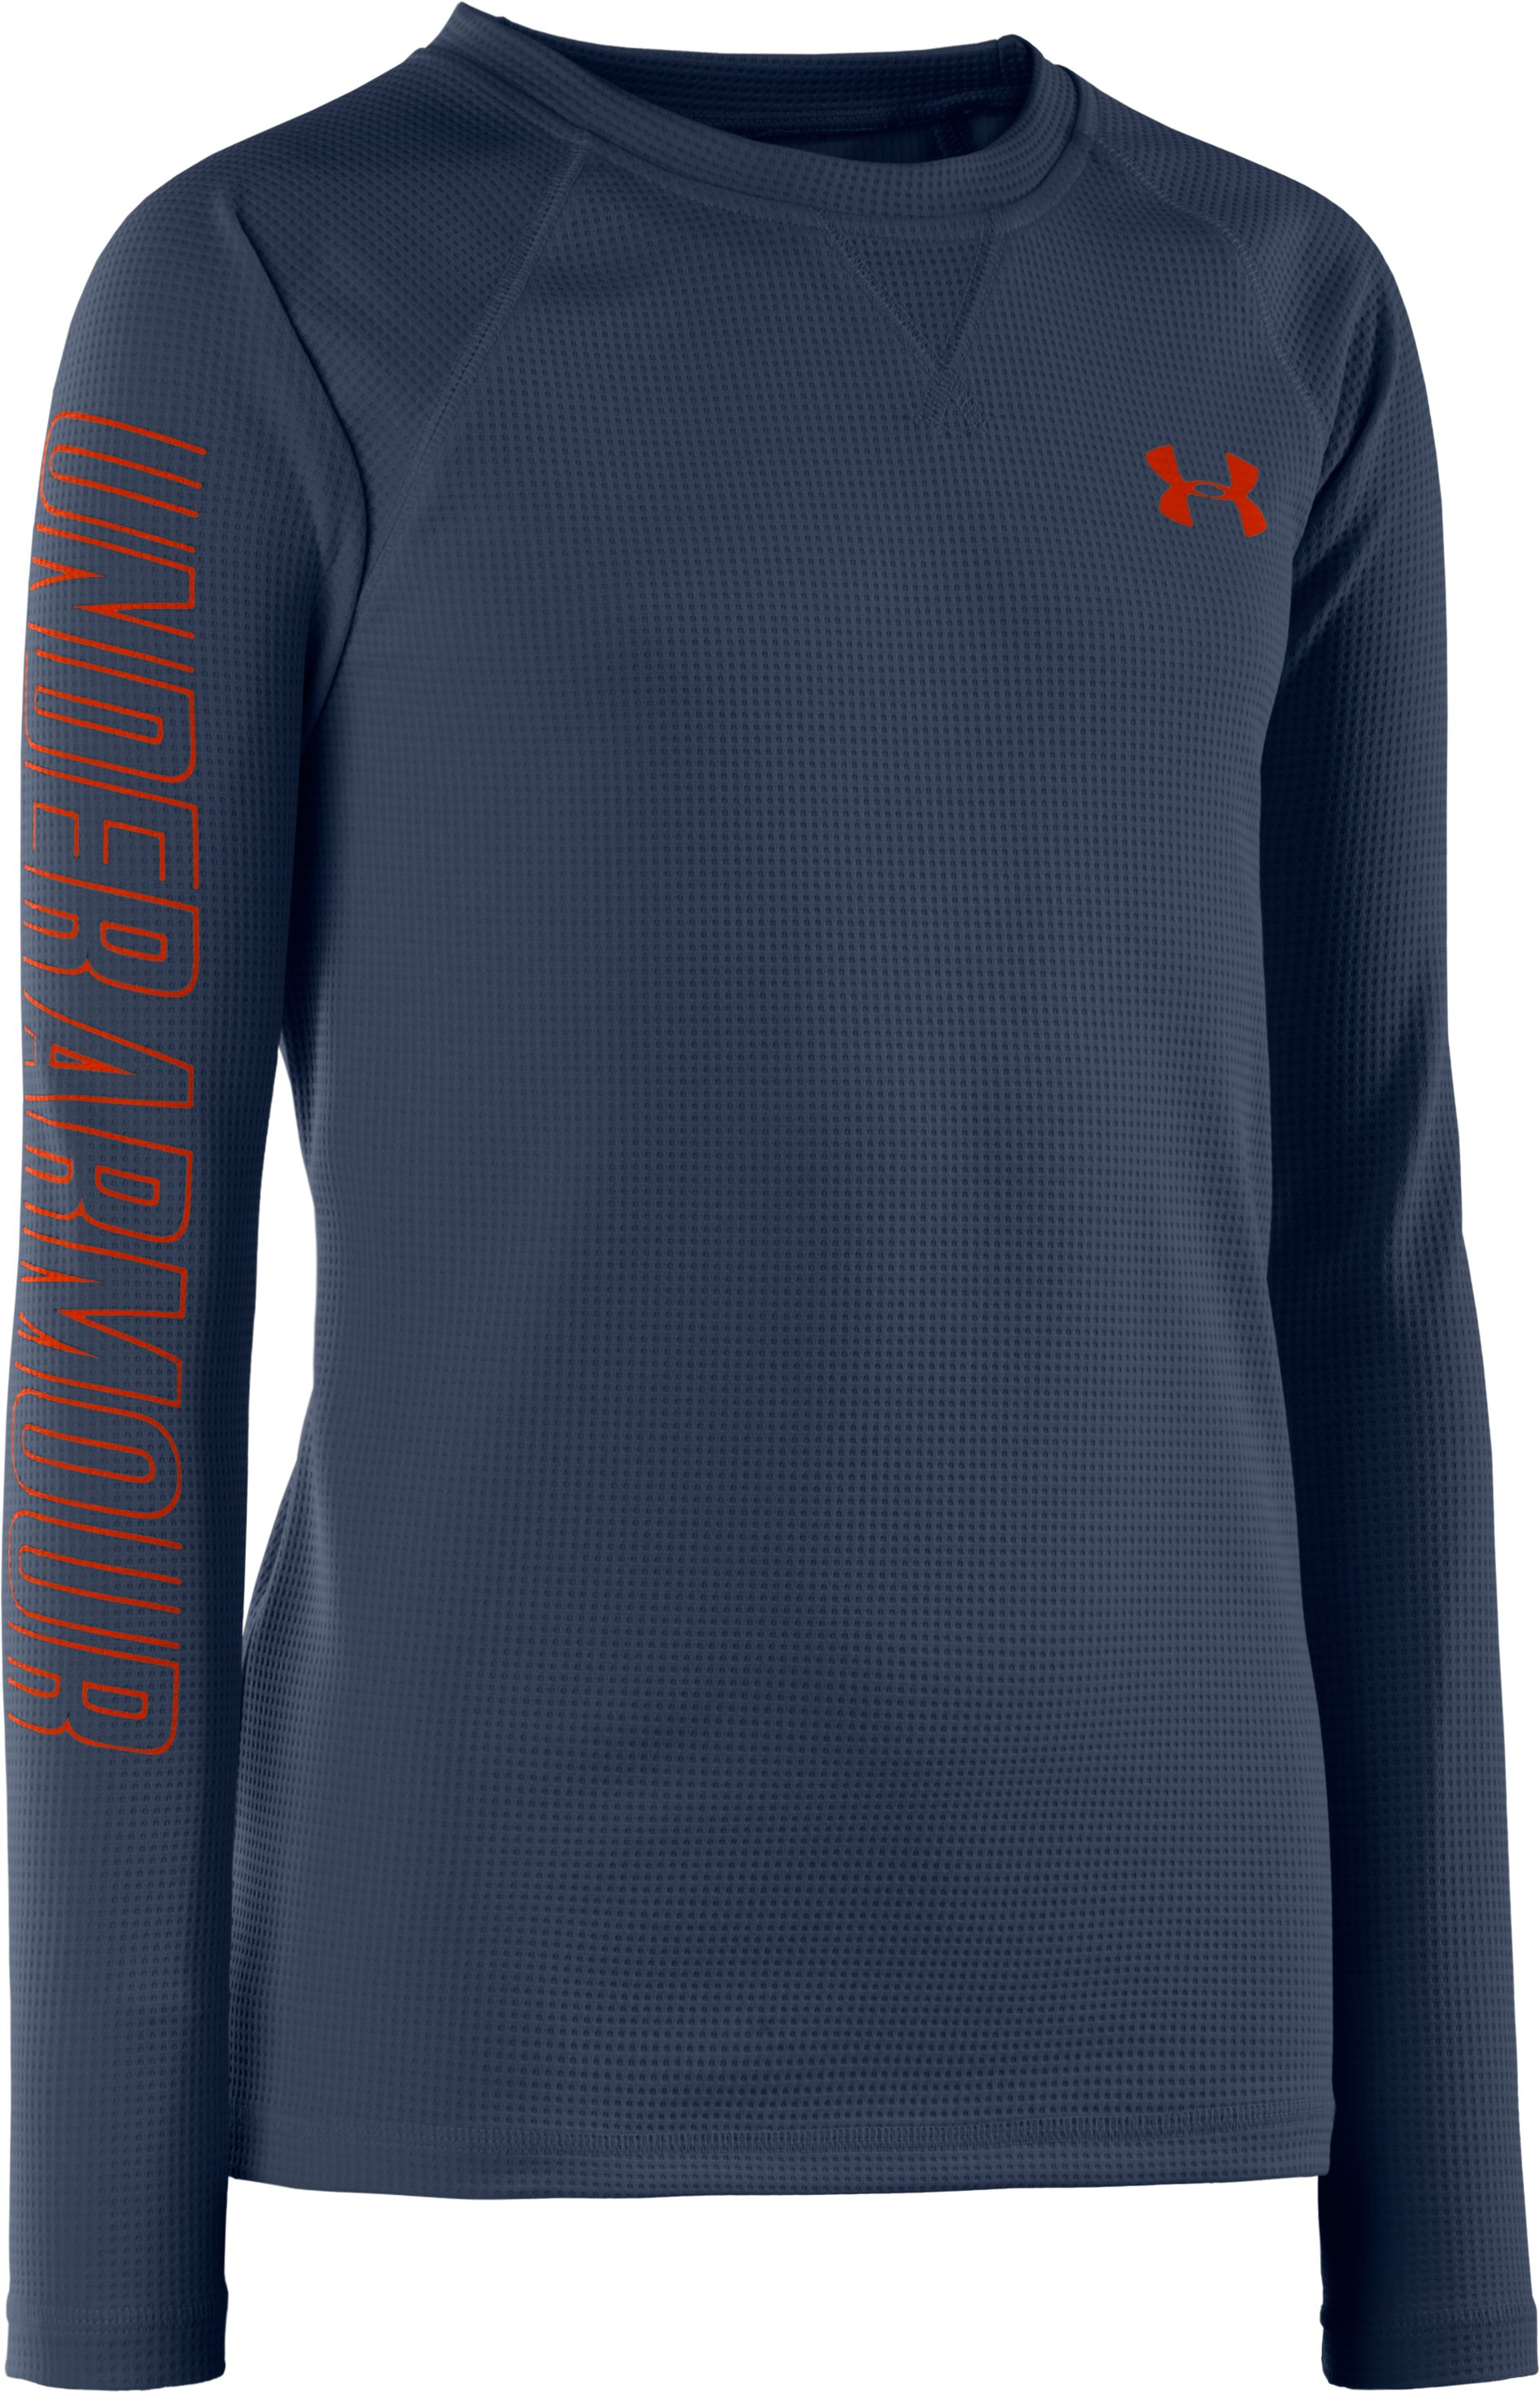 Boys' UA Momentum Shirt, Mechanic Blue, zoomed image